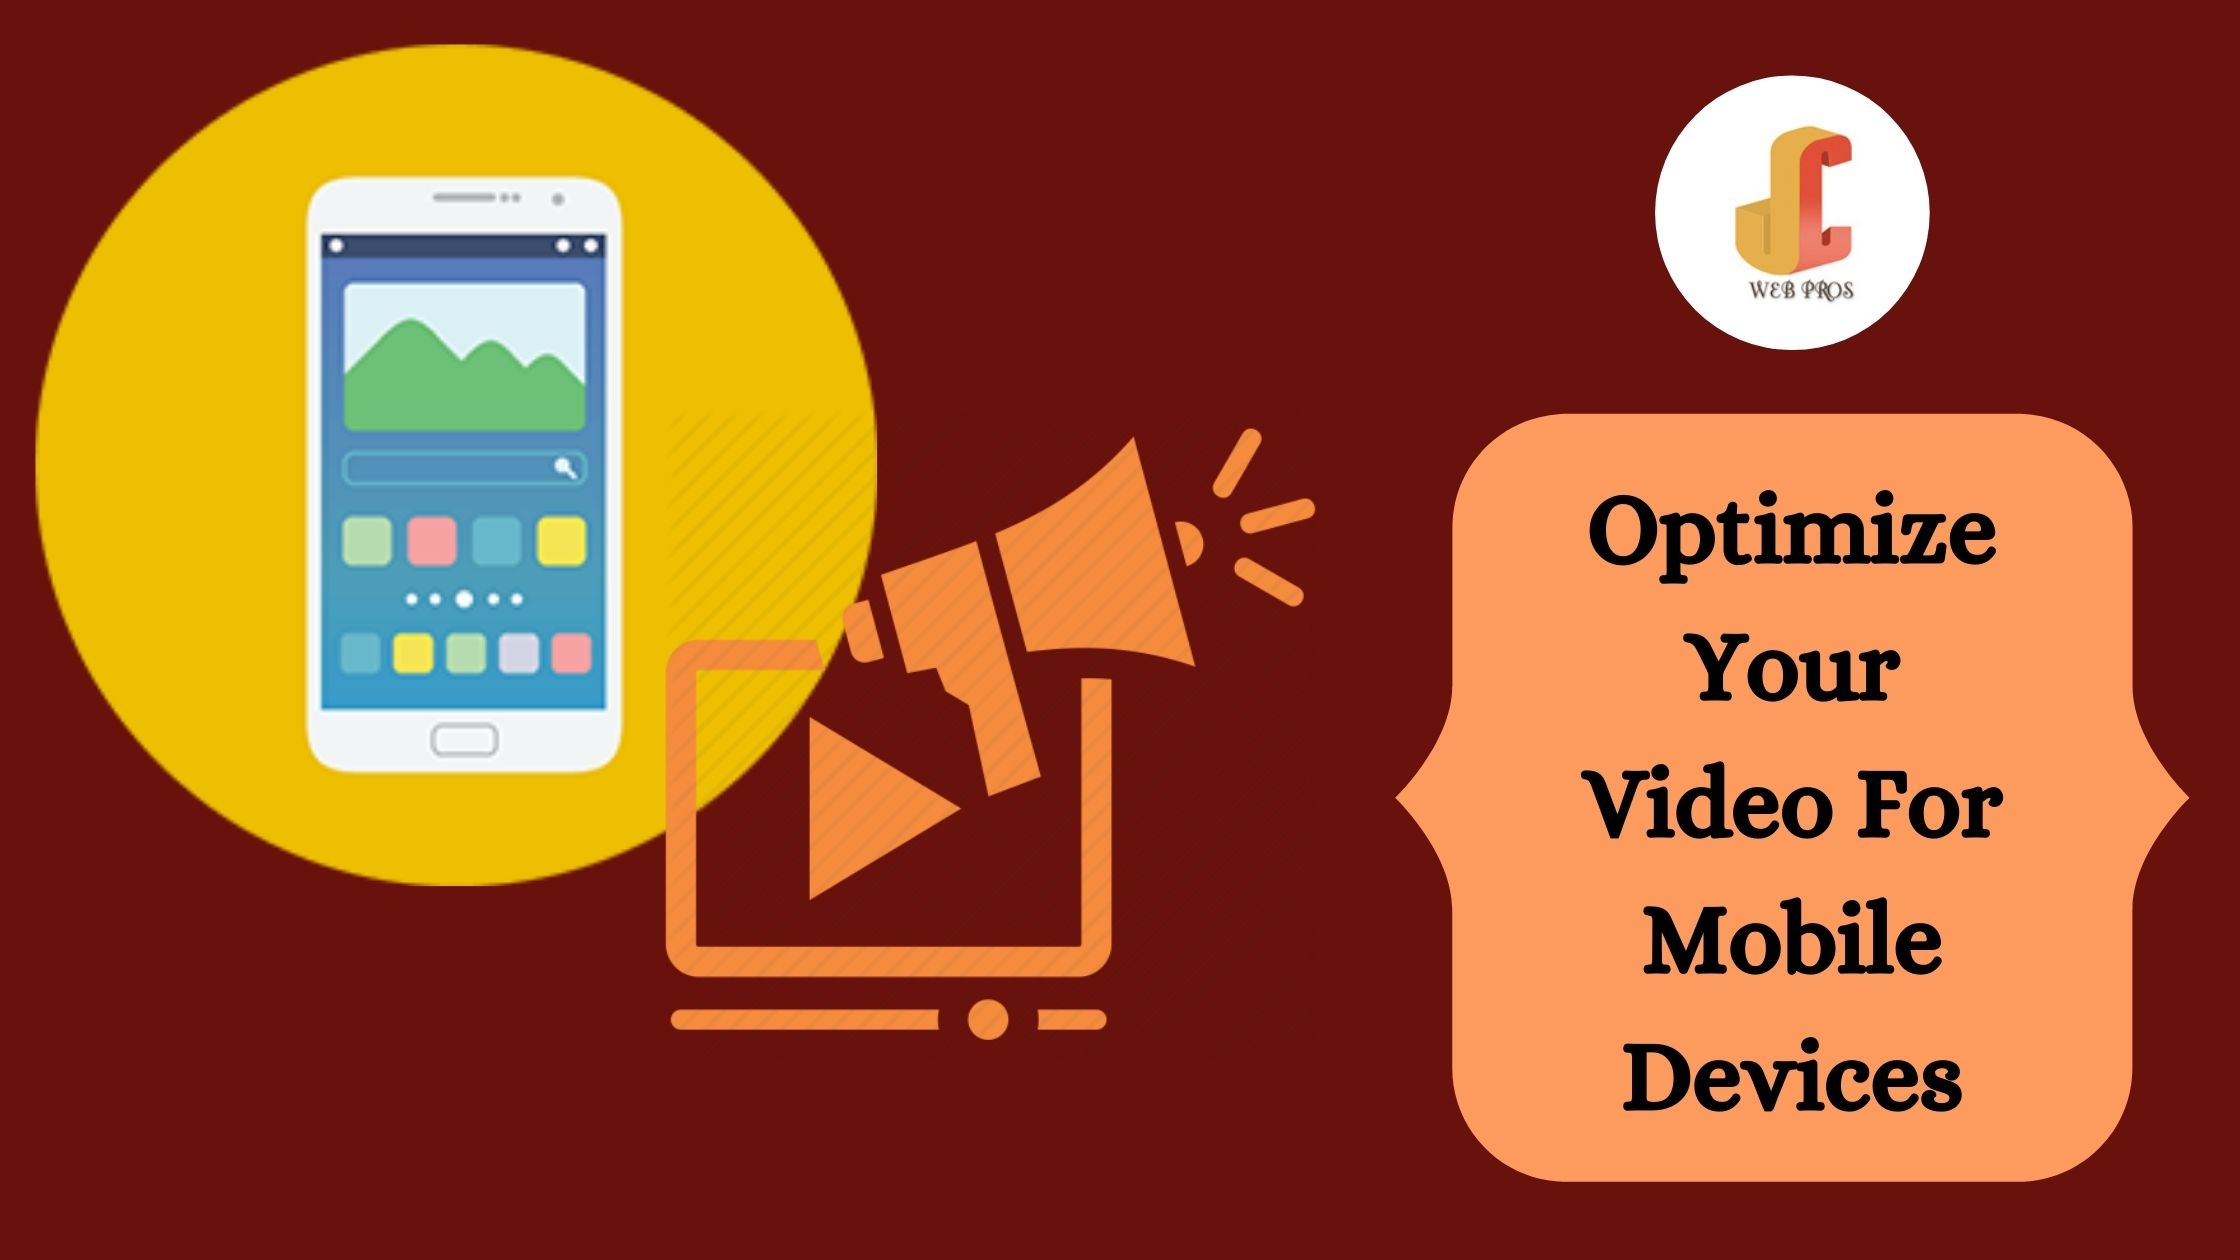 Optimize Your Video For Mobile Devices